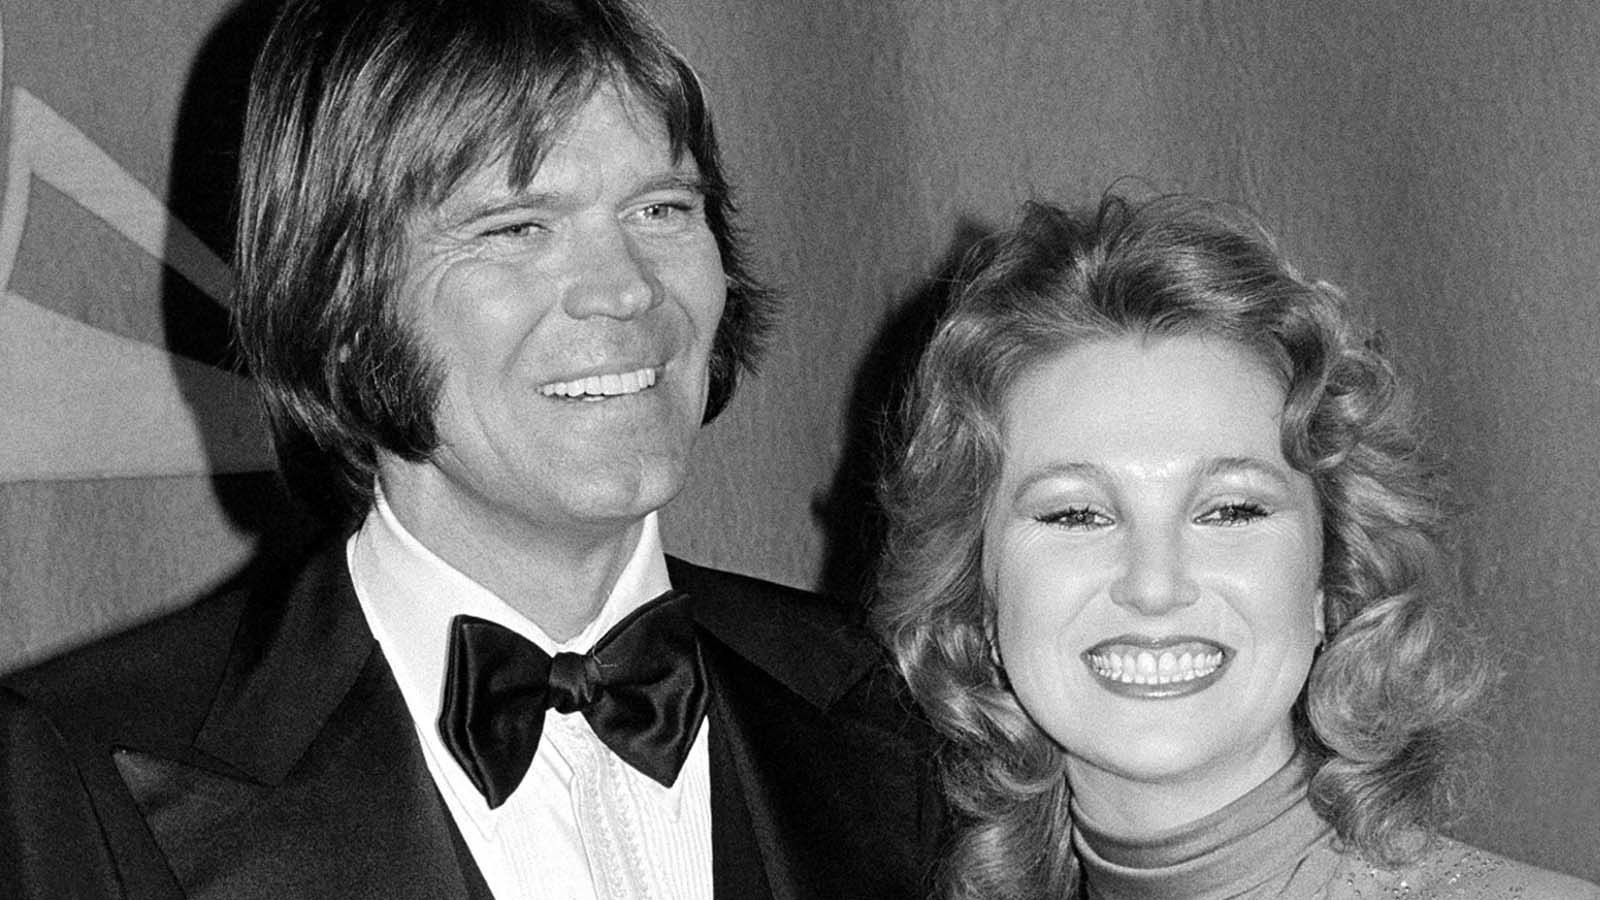 Glen Campbell and Tanya Tucker at the Grammy Awards in 1979, when they were engaged. (Associated Press)